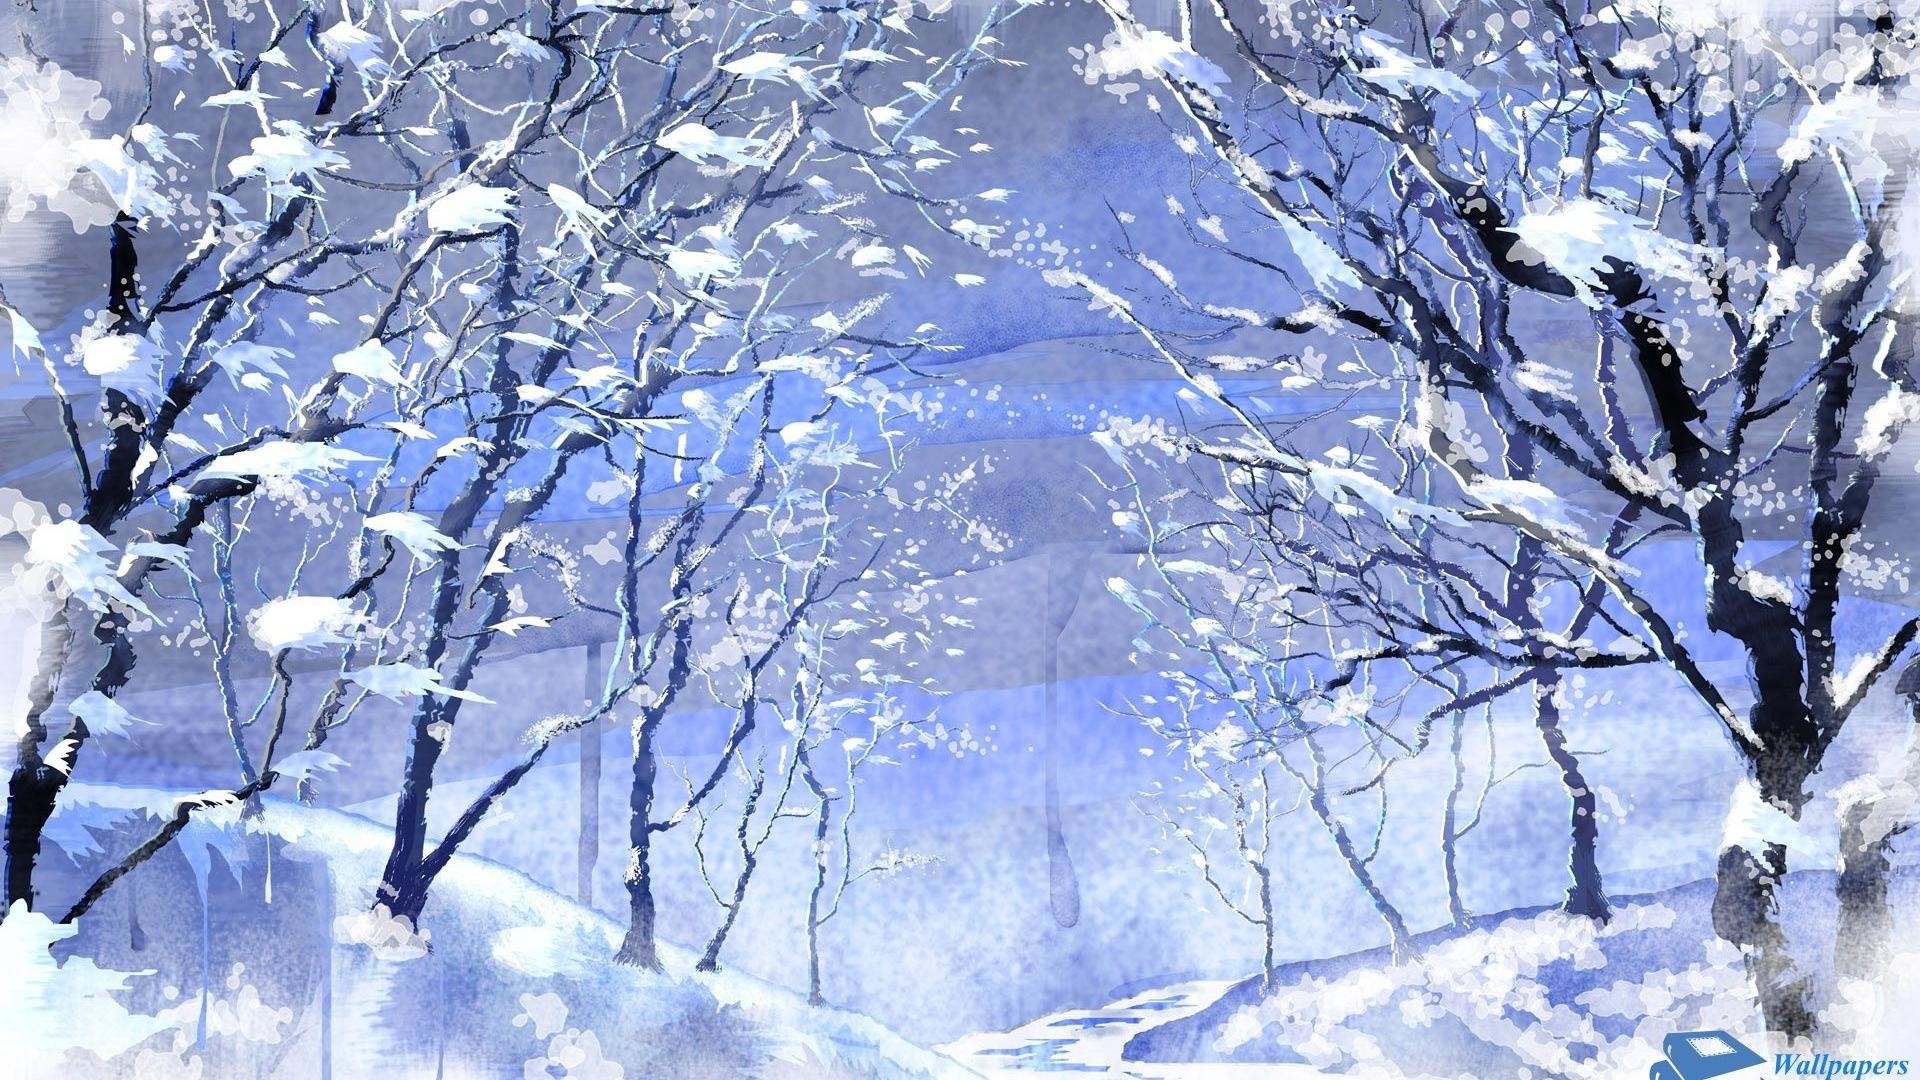 Beautiful Winter Backgrounds 51 images 1920x1080